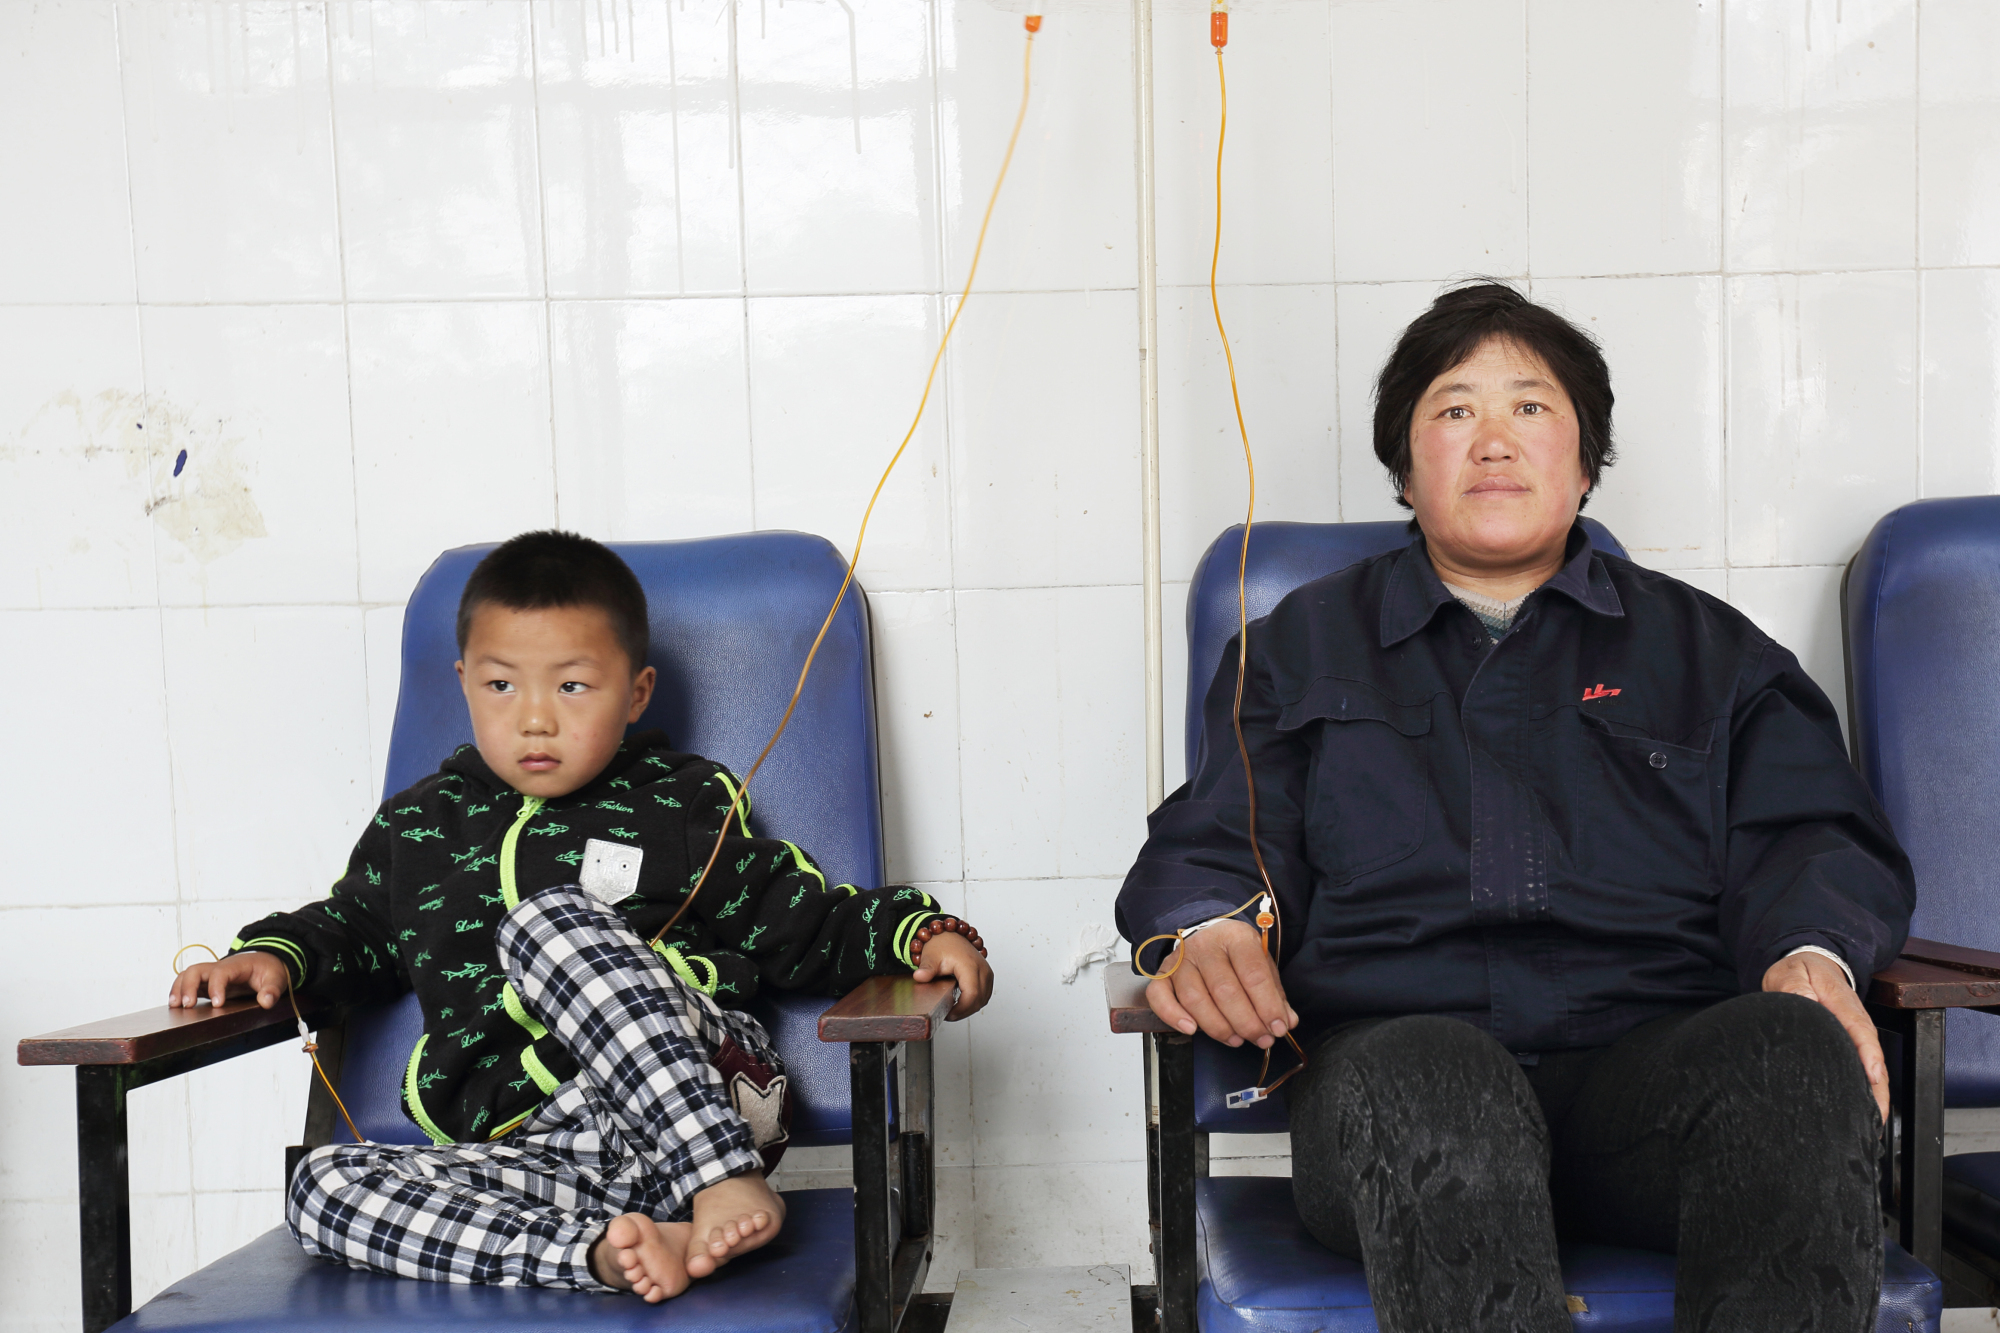 In pictures: The forgotten victims of China's air pollution 'clean-up'